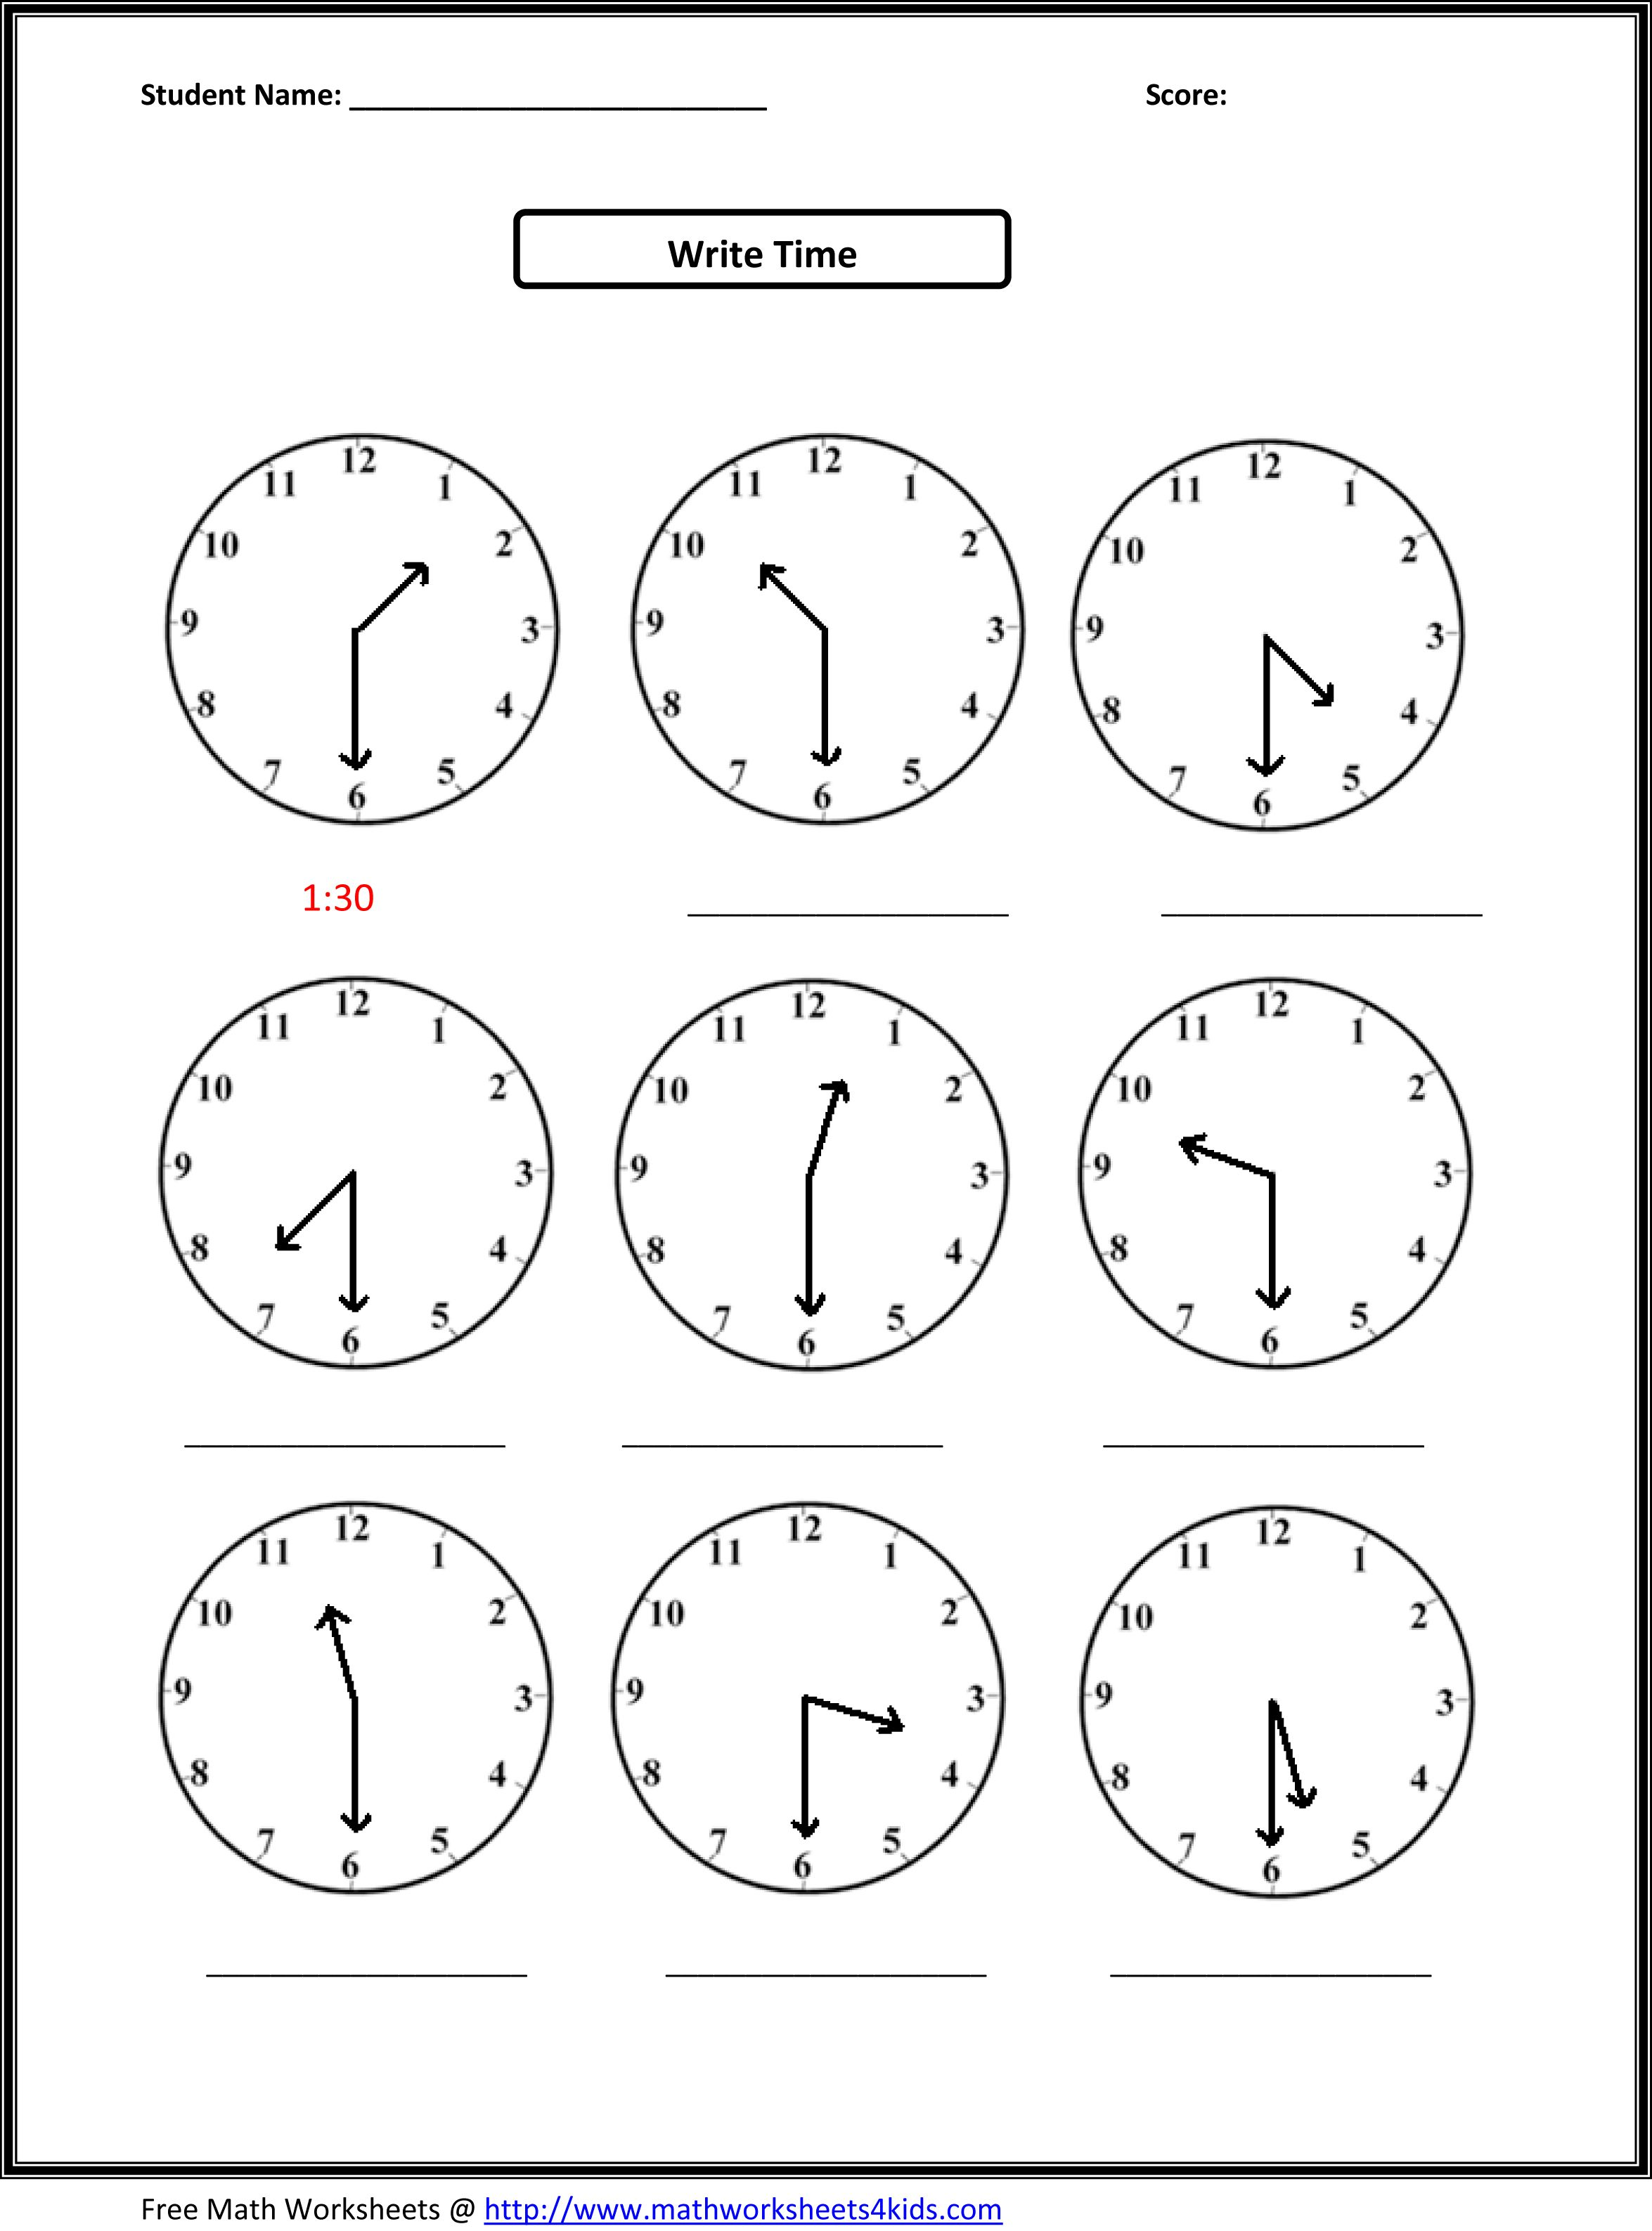 Proatmealus  Surprising Worksheet On Time For Grade   Reocurent With Fascinating Free Printable Telling Time Worksheets Nd Grade  Reocurent With Agreeable The Story Of An Hour Worksheet Also Auditory Processing Worksheets In Addition House On Mango Street Worksheets And Worksheet On Single And Double Replacement Reactions As Well As Similar And Congruent Figures Worksheet Additionally Nd Grade Verb Worksheets From Reocurentcom With Proatmealus  Fascinating Worksheet On Time For Grade   Reocurent With Agreeable Free Printable Telling Time Worksheets Nd Grade  Reocurent And Surprising The Story Of An Hour Worksheet Also Auditory Processing Worksheets In Addition House On Mango Street Worksheets From Reocurentcom